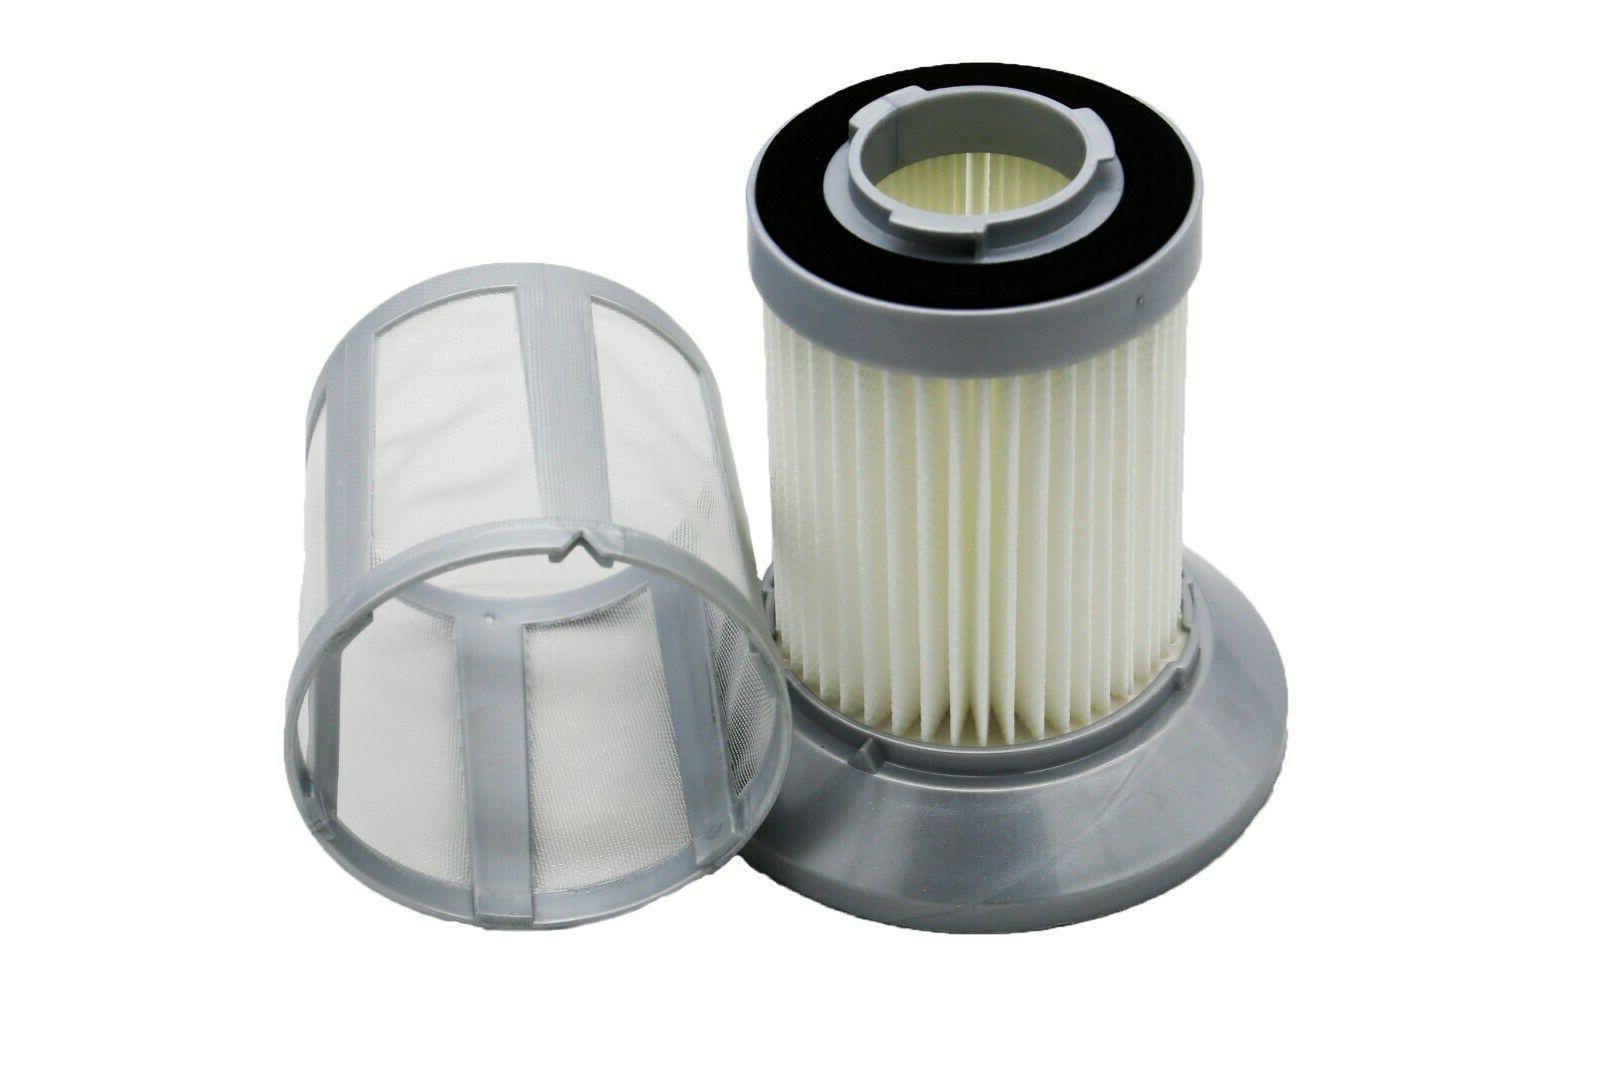 Green Label Filter for Bissell 2156A Zing Bagless Canister